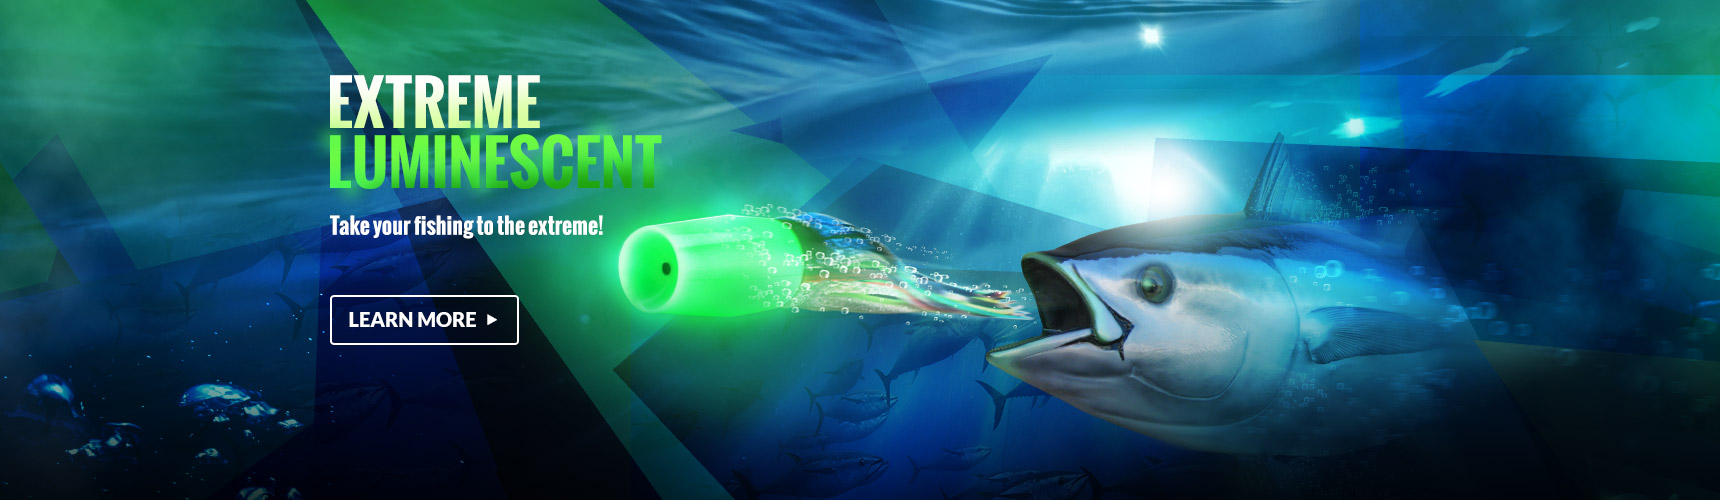 Luminescent Game Fishing Lures